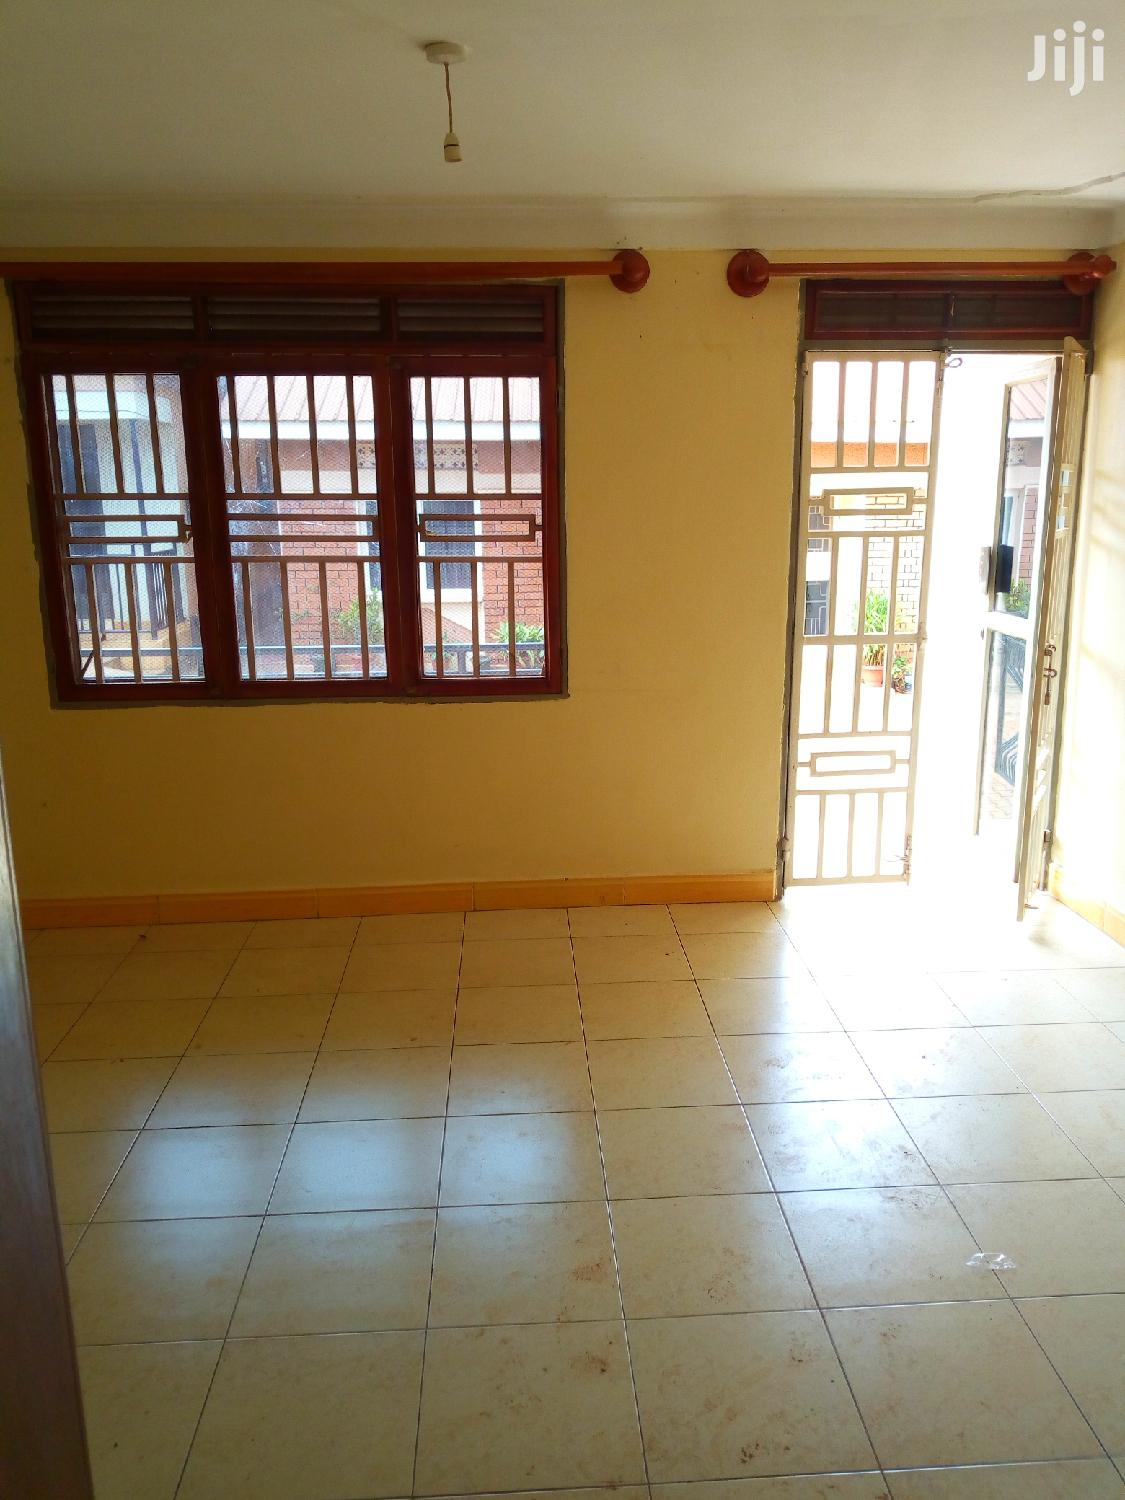 An Apartment 2bedrooms 2 Toilet in Mutungo Up Hill | Houses & Apartments For Rent for sale in Kampala, Central Region, Uganda